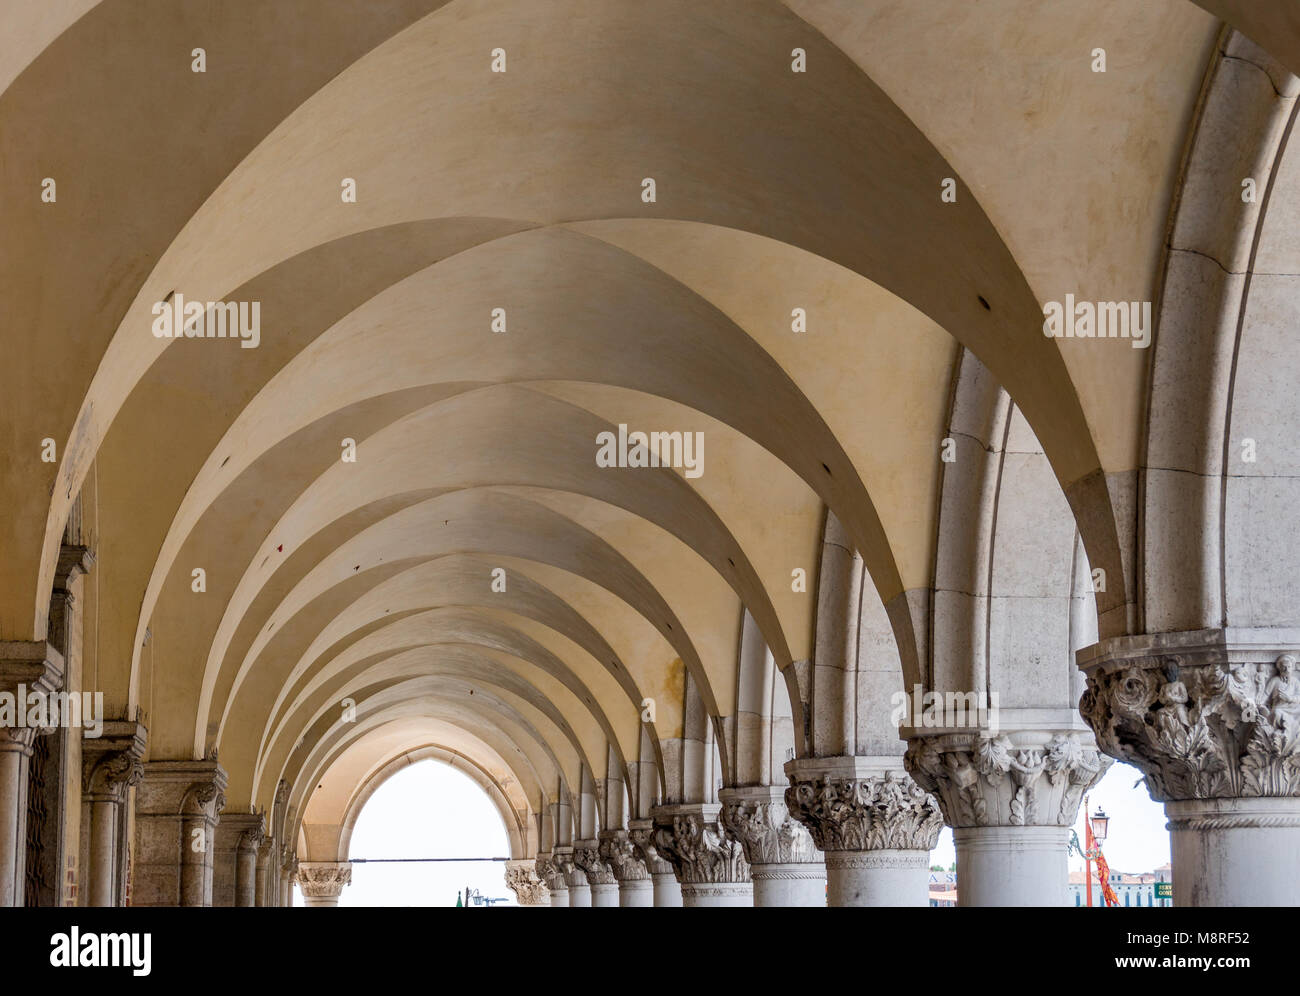 Arches and Pillars of the Doge's Palace (San Marco Square, Venice, Italy) - Stock Image